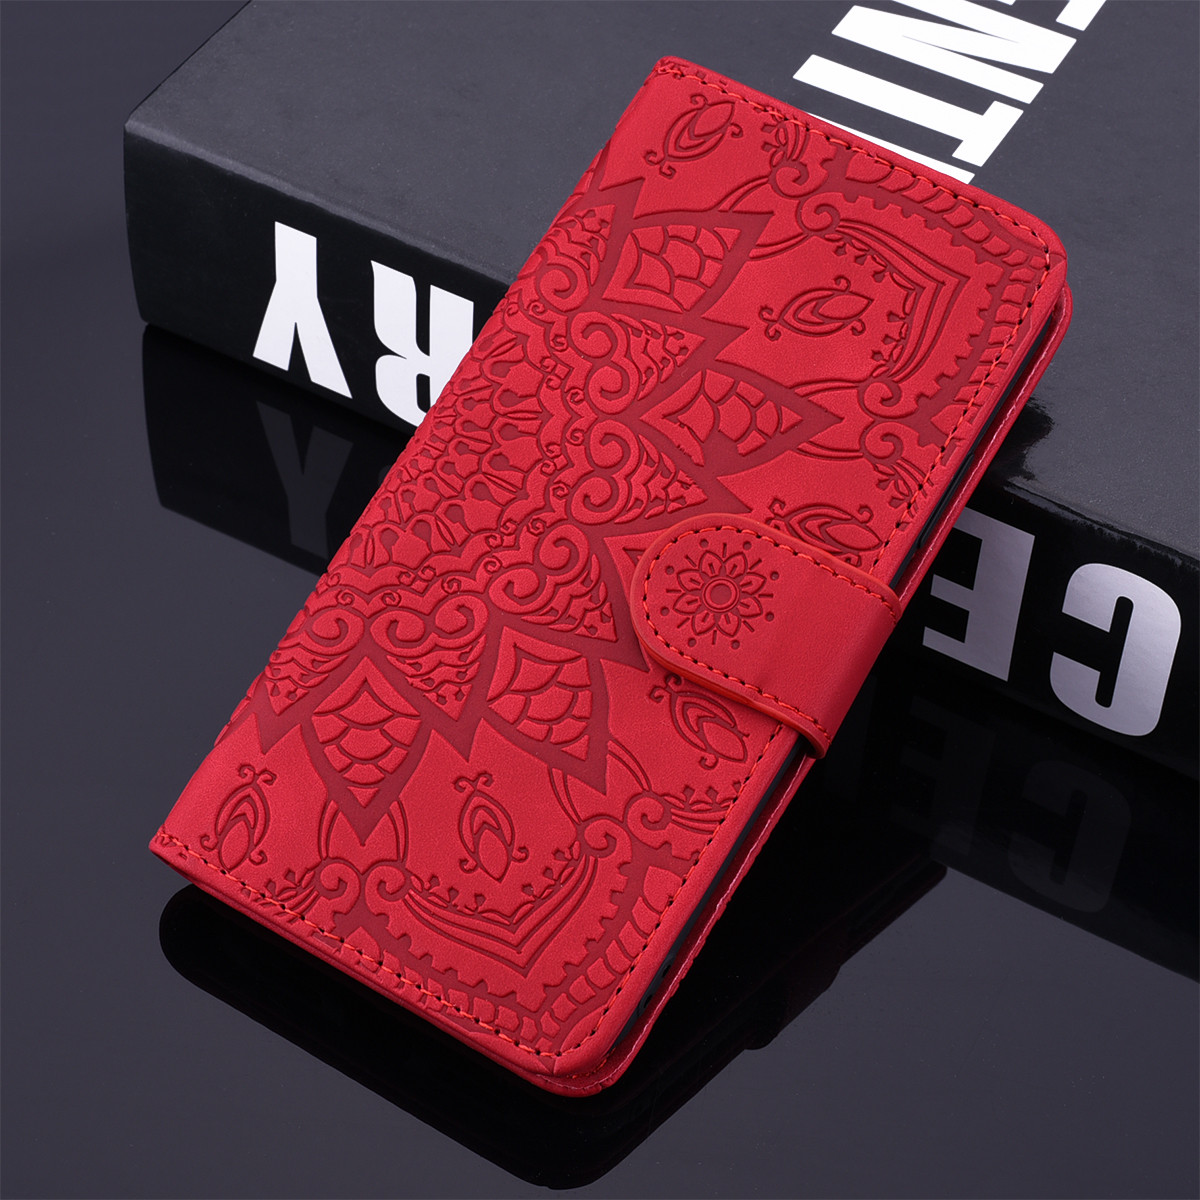 For <font><b>Xiaomi</b></font> <font><b>Redmi</b></font> <font><b>Note</b></font> <font><b>7</b></font> 8 <font><b>Pro</b></font> 7A Leather Flip Wallet Book Case For Red MI A3 Lite 9 9T 5 6 <font><b>Pro</b></font> F1 <font><b>Note</b></font> 4 4X <font><b>Global</b></font> <font><b>Version</b></font> Cover image